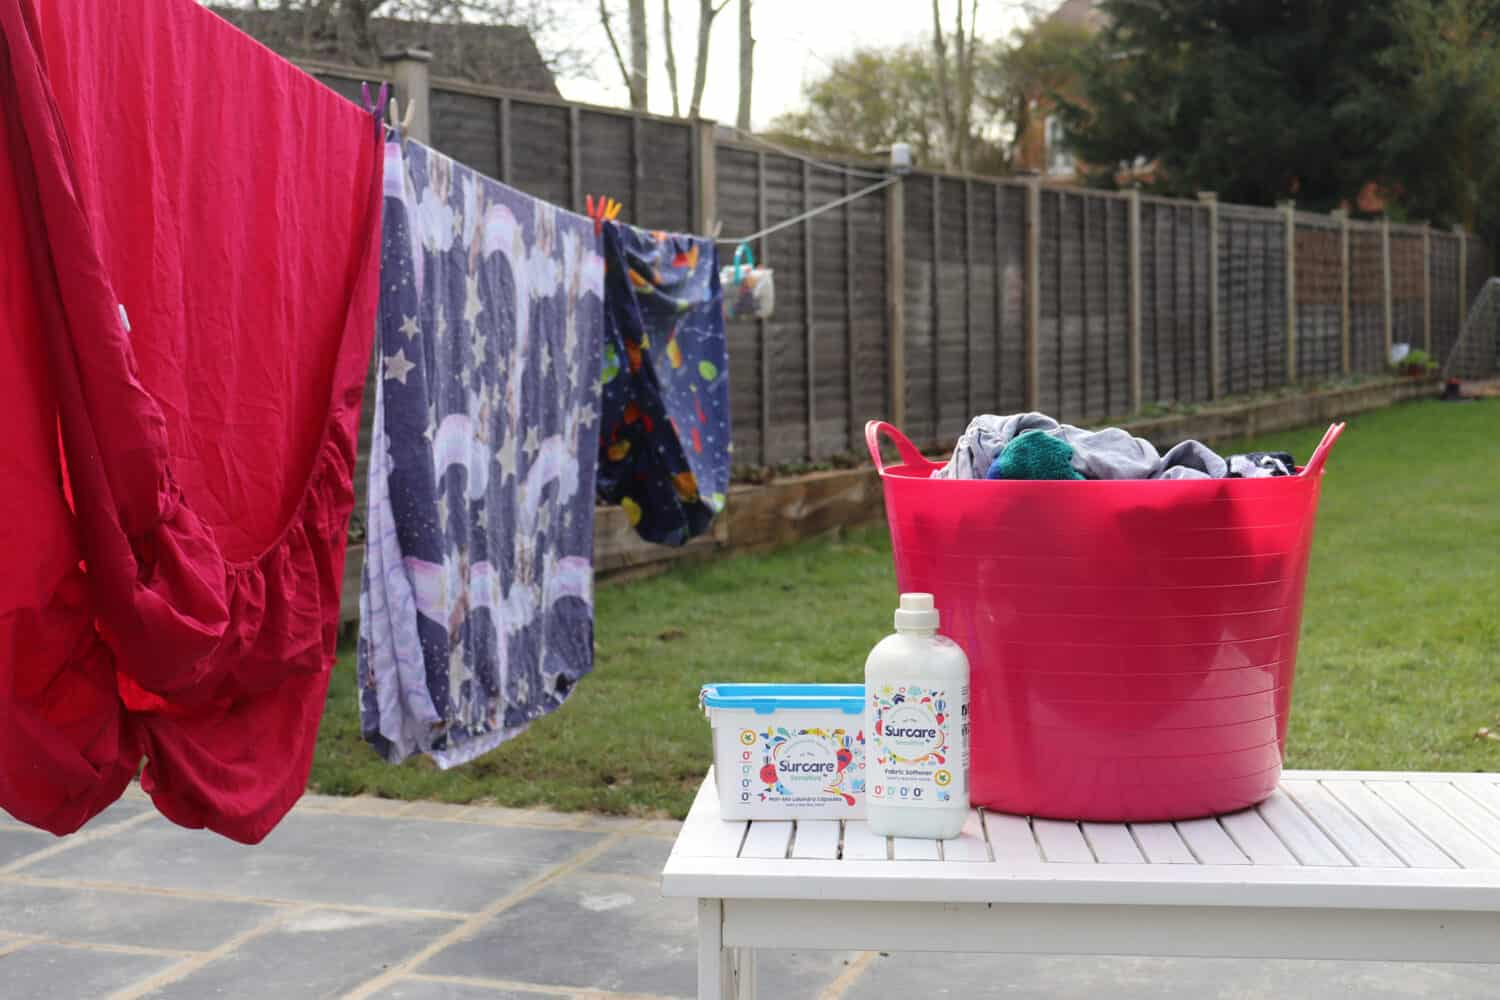 Refreshing our Laundry Routine with Surcare